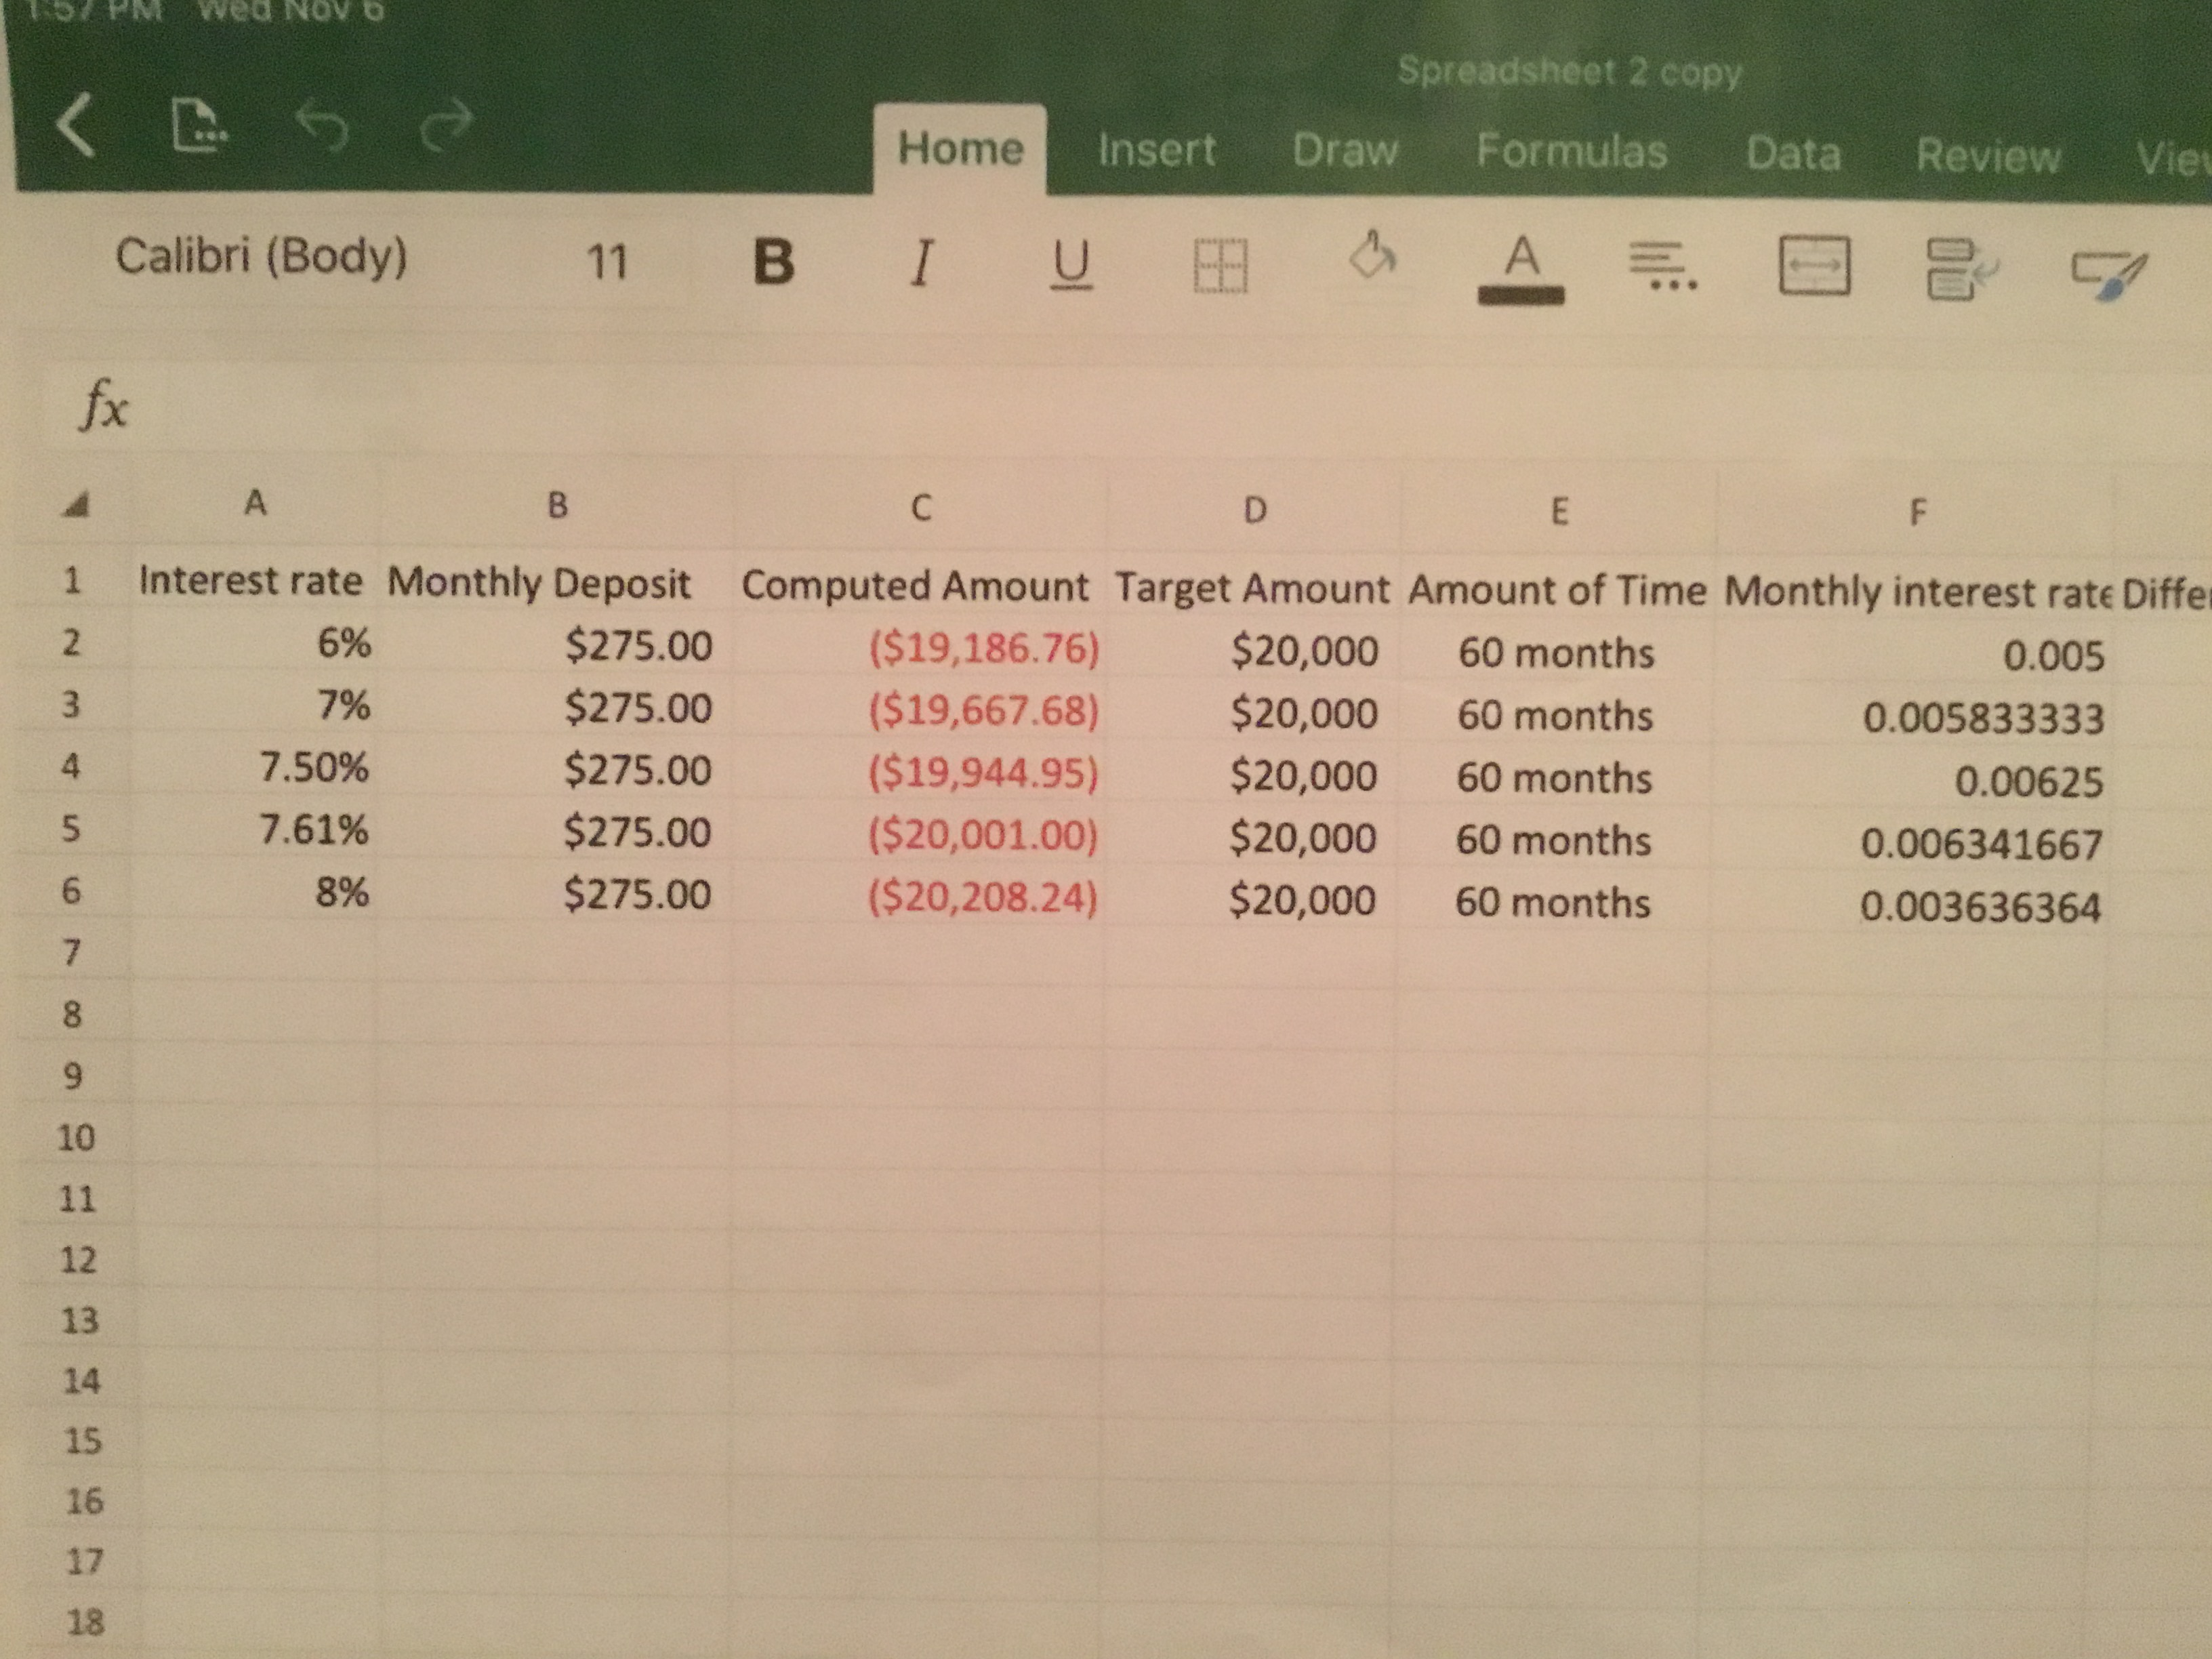 1.67PM Wed Nov 6 Spreadsheet 2 copy K C Home Insert Draw Formulas Data Review Vie Calibri (Body) B I U EB A 7 11 fx A B C D E F Interest rate Monthly Deposit $275.00 Computed Amount Target Amount Amount of Time Monthly interest rate Differ ($19,186.76) 1 2 6% $20,000 60 months 0.005 $20,000 ($19,667.68) ($19,944.95) ($20,001.00) ($20,208.24) 3 7% $275.00 60 months 0.005833333 4 7.50% $275.00 $20,000 60 months 0.00625 $20,000 $20,000 7.61% $275.00 60 months 0.006341667 6 8% $275.00 60 months 0.003636364 7 8 9 10 11 12 13 14 15 16 17 18